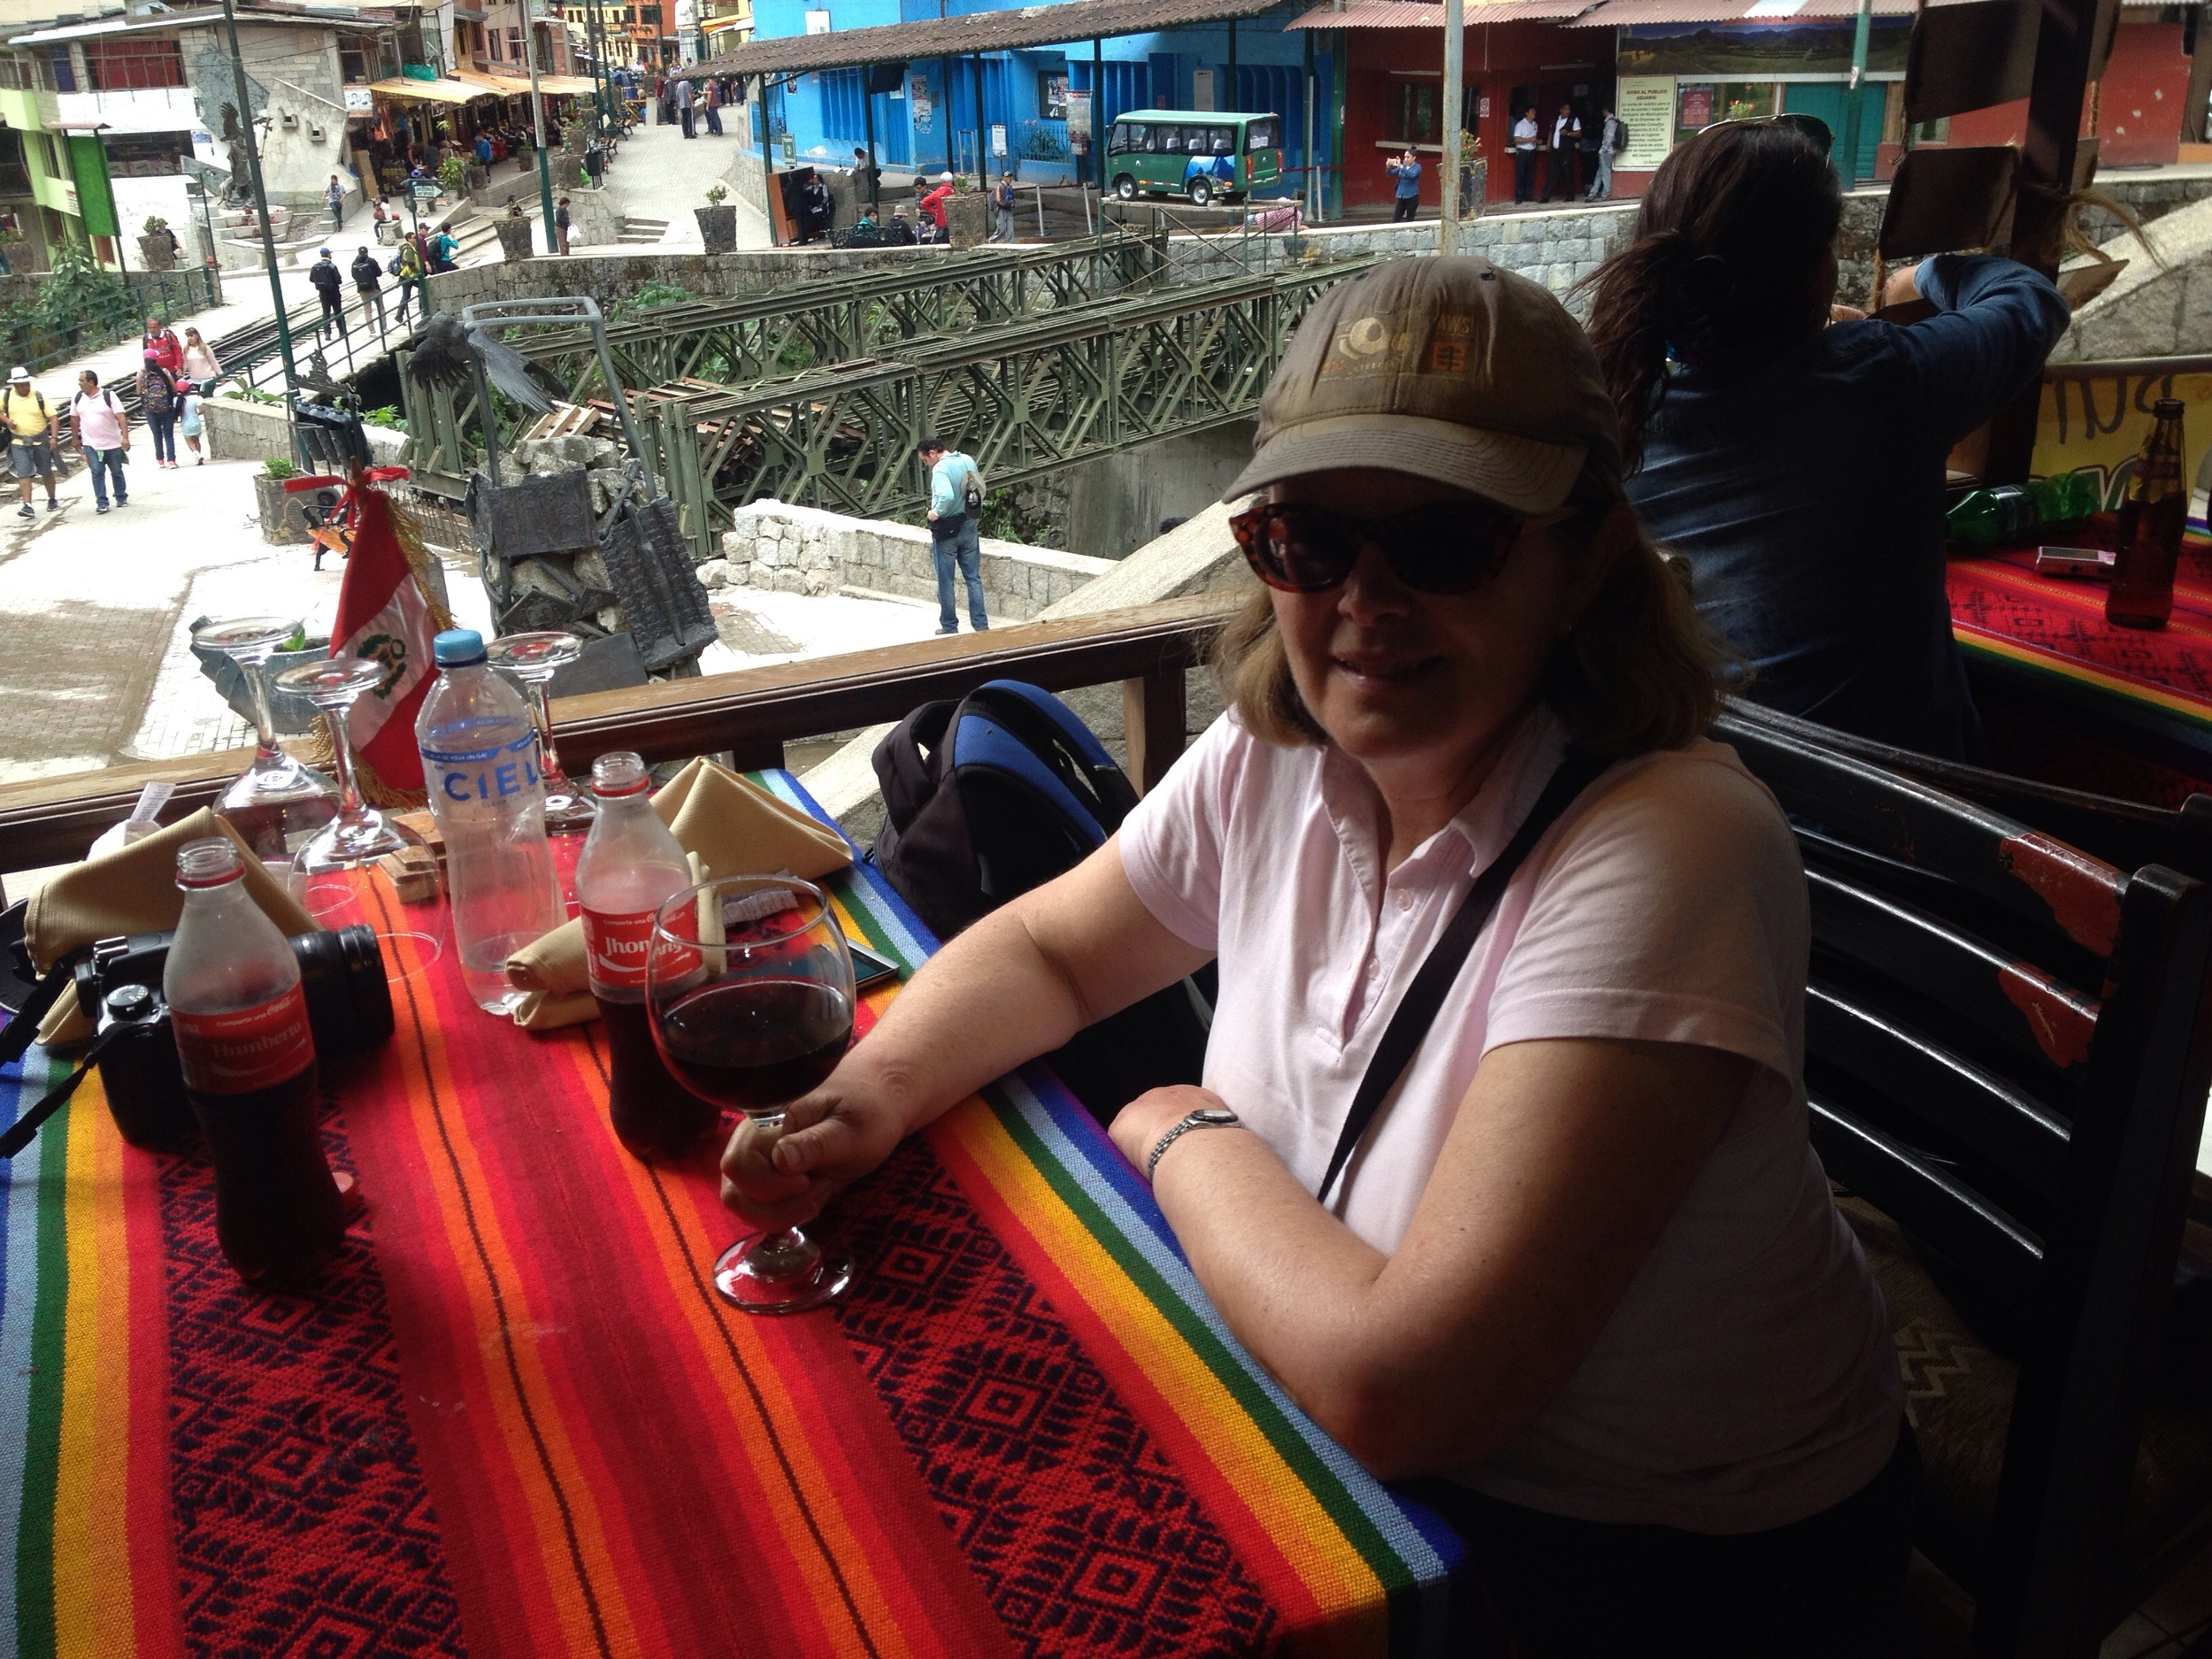 A very welcome rest and Coke back in Aguascalientes